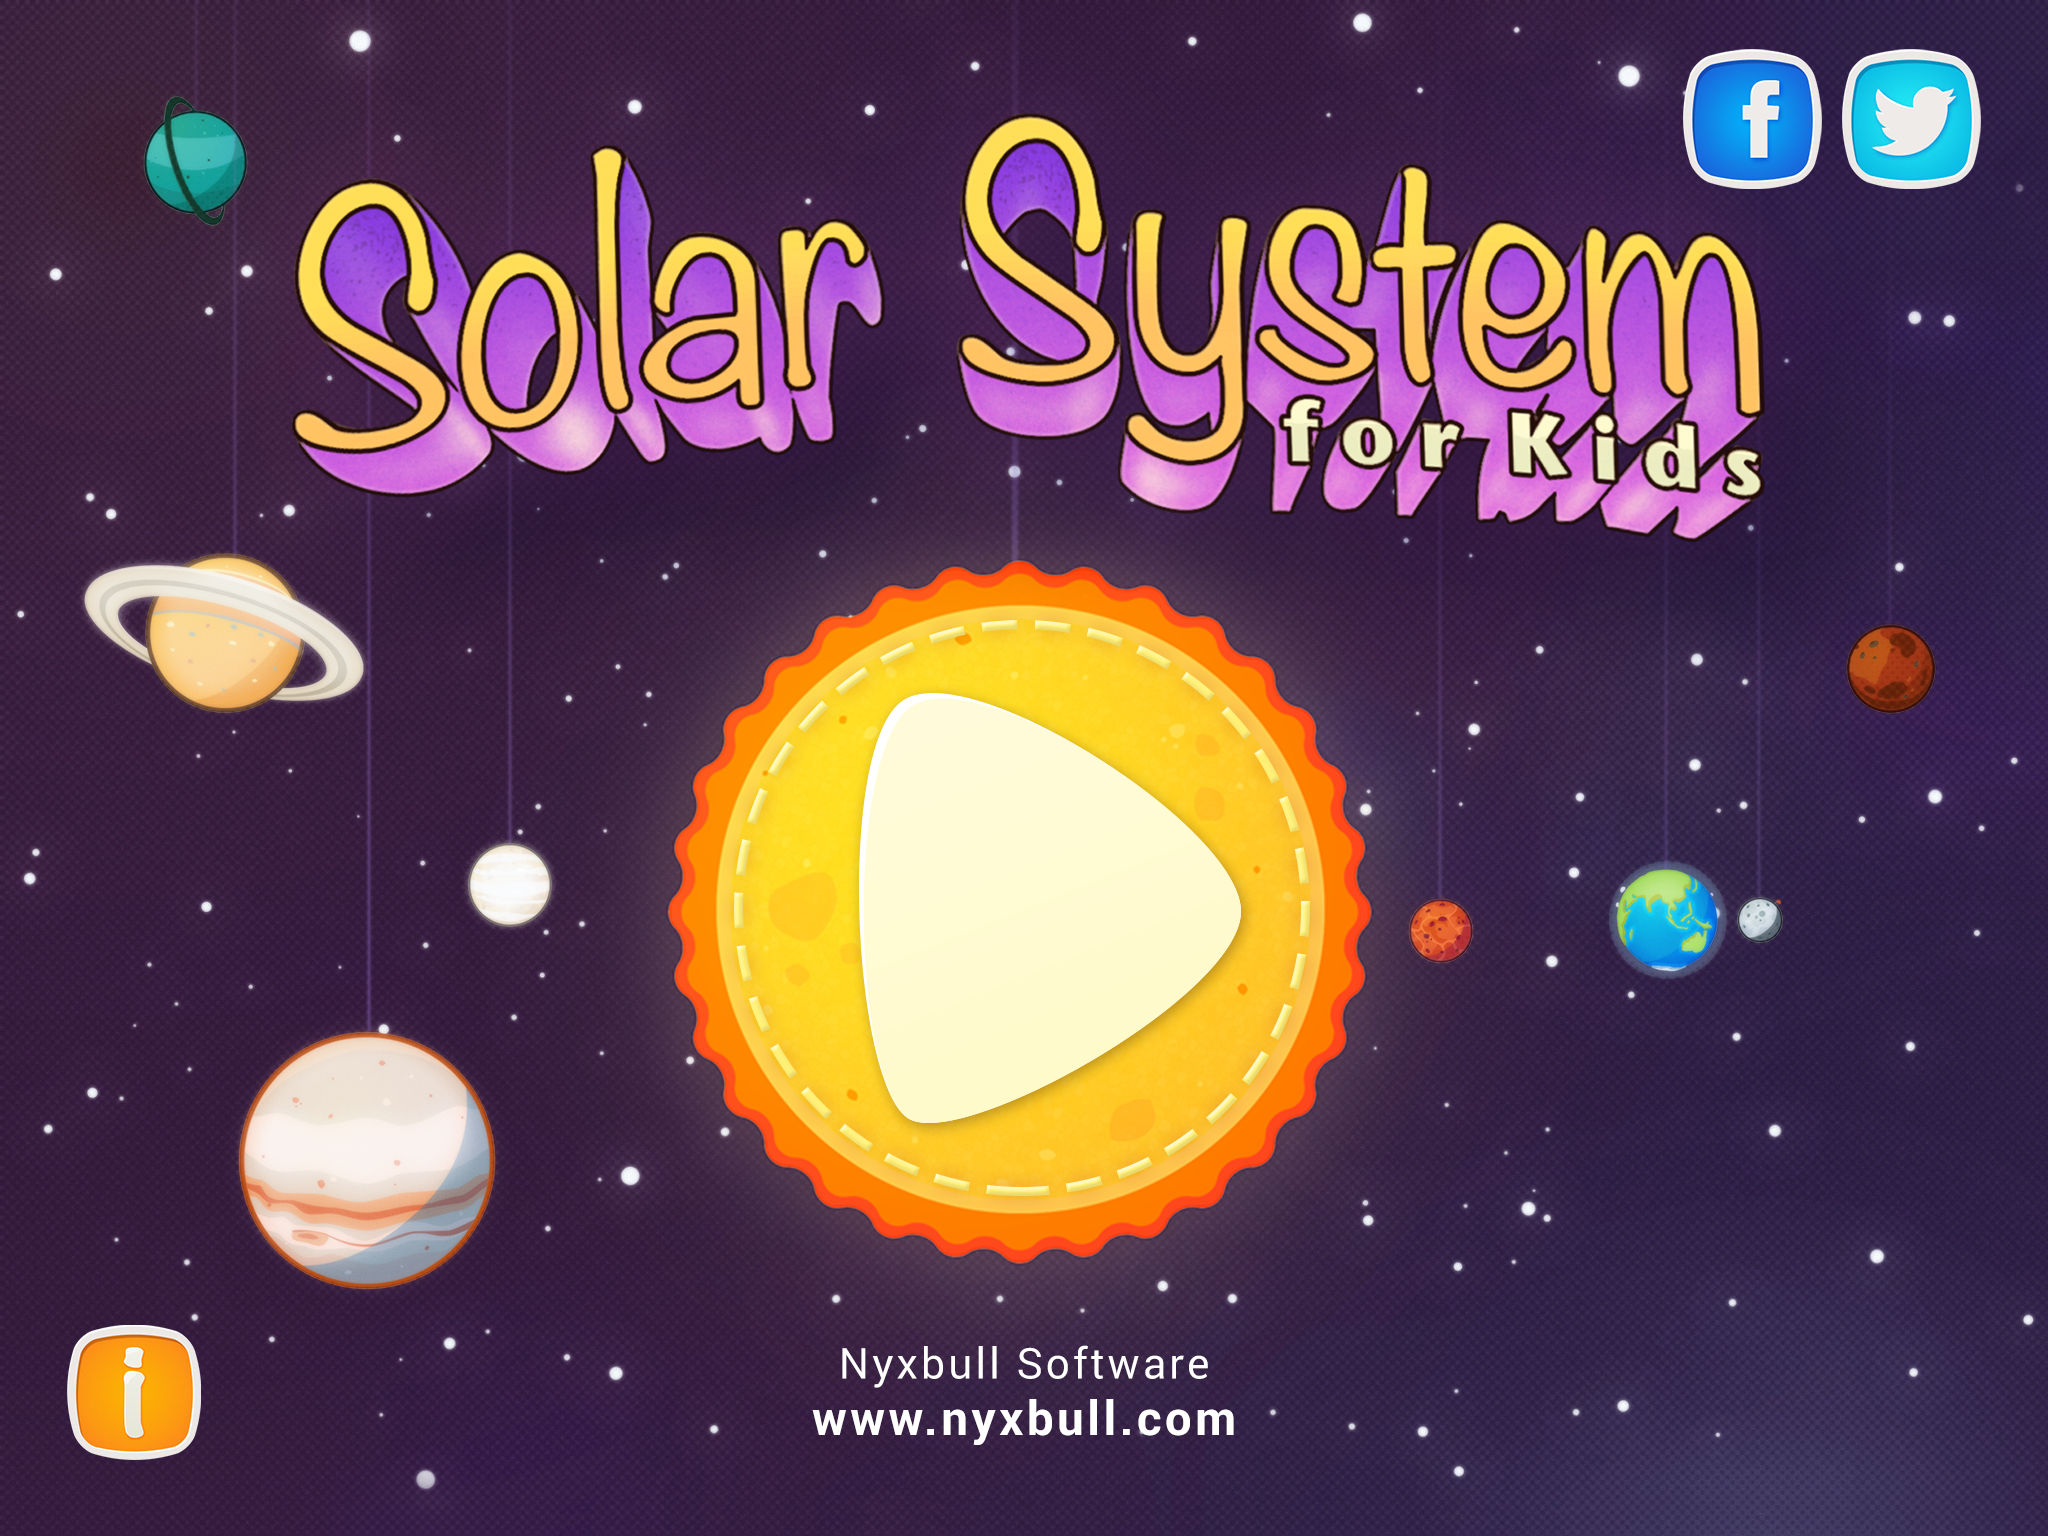 the solar system for kids - HD1920×1440